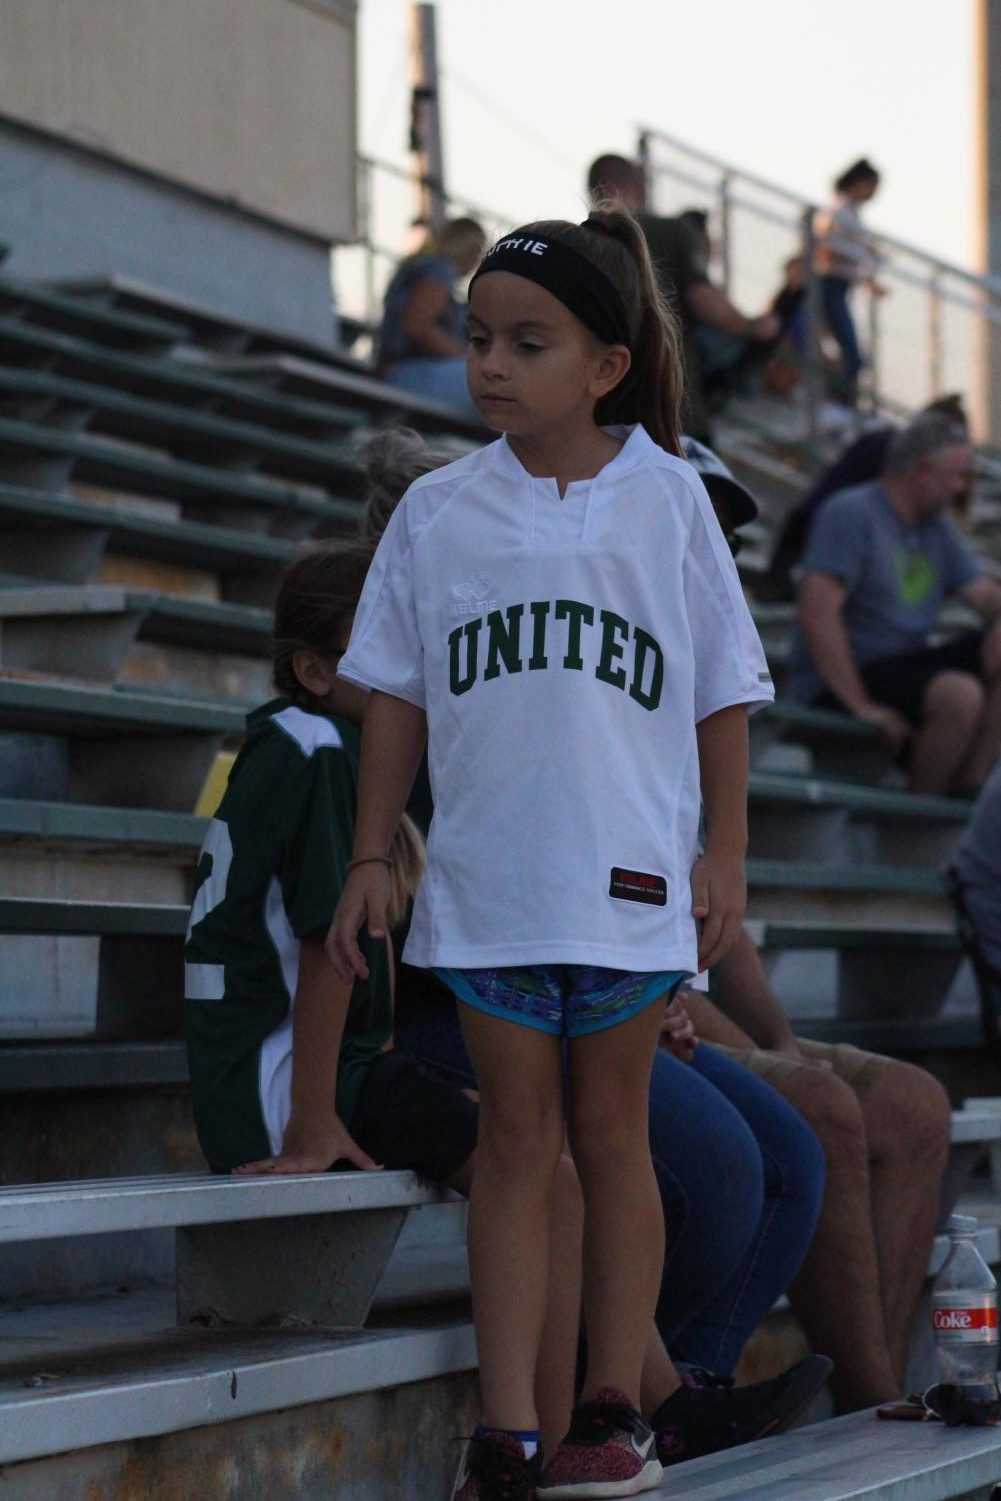 Young+Derby+supporter+stands+with+her+family+to+support+the+Derby+soccer+team.